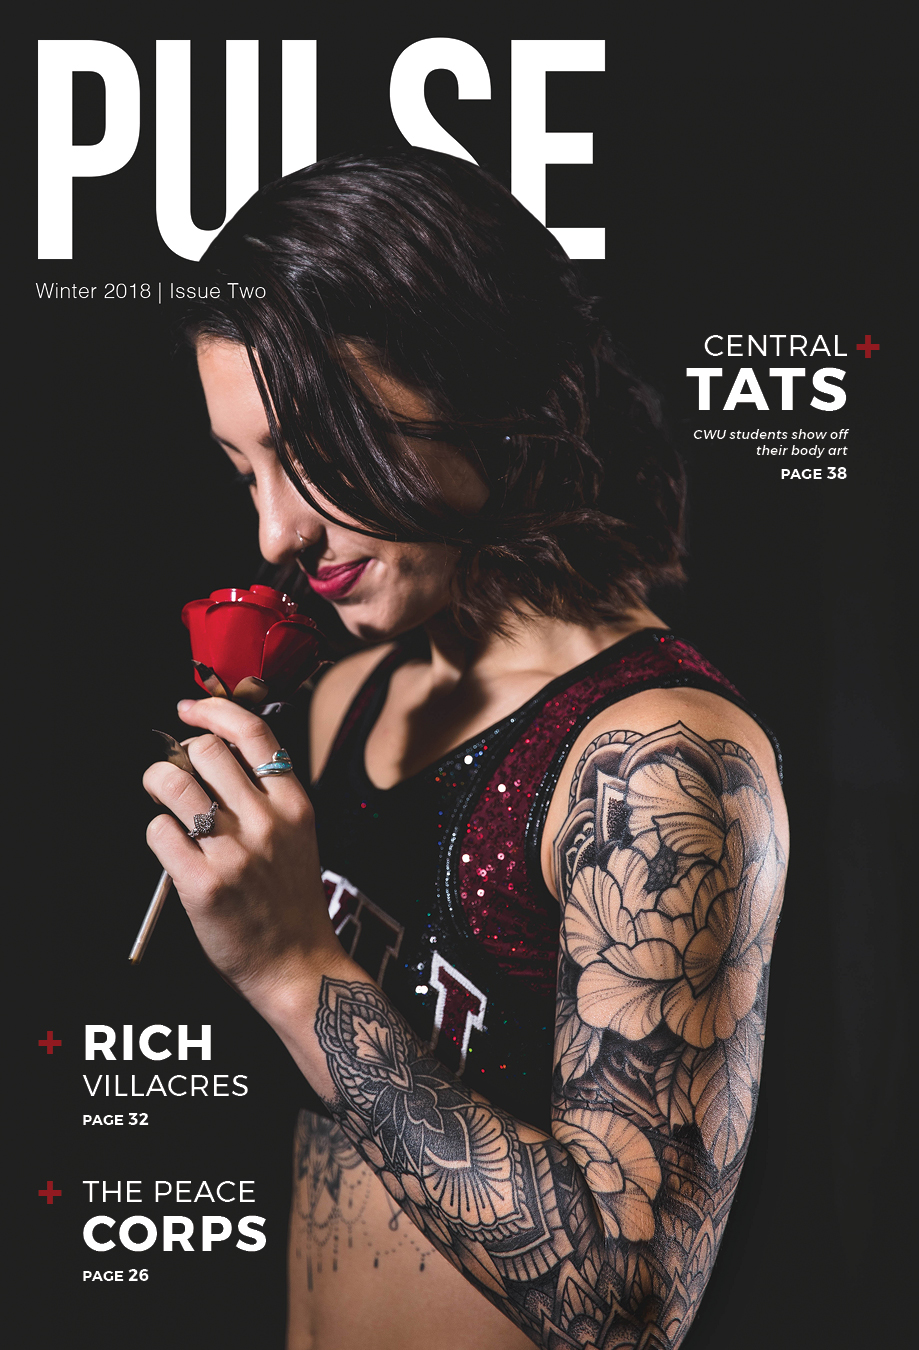 Winter 2018 Issue Two Cover.jpg